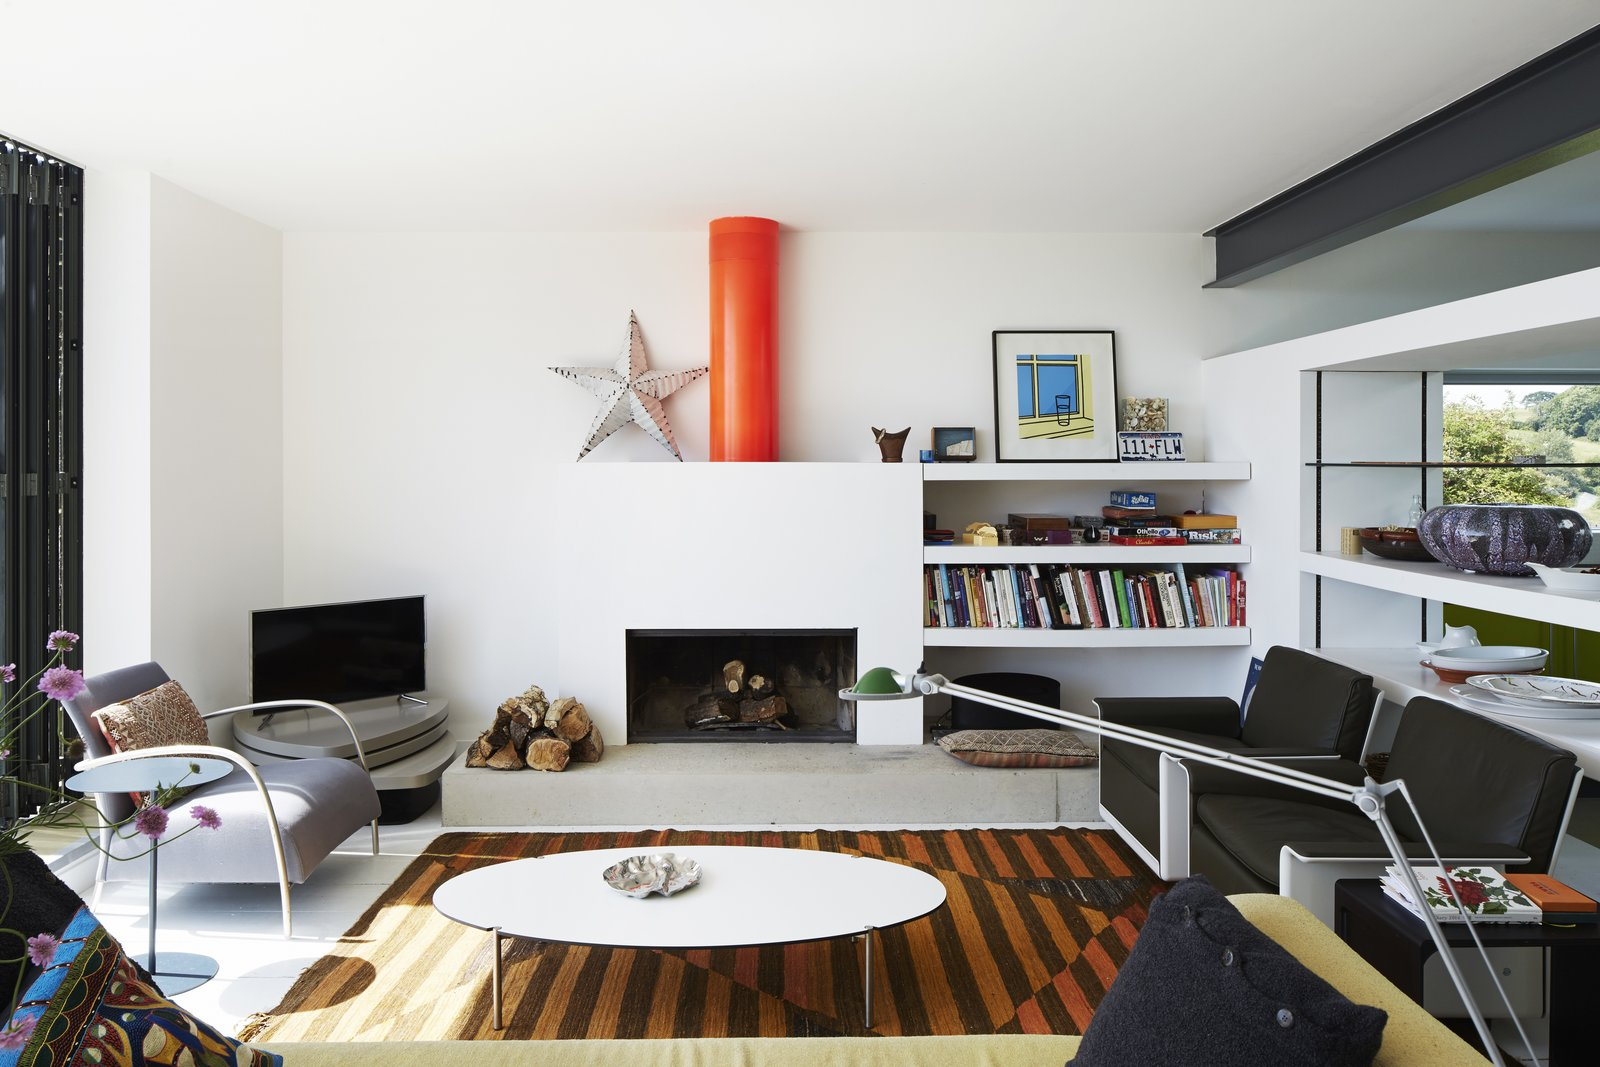 Living Room, Wood Burning Fireplace, Standard Layout Fireplace, Rug Floor, Floor Lighting, Chair, Painted Wood Floor, Sofa, Coffee Tables, End Tables, Shelves, and Storage A home near Rye, England, opens onto a deck through a Sunflex door. The living room features a sofa by Terence Woodgate, 620 chairs by Dieter Rams for Vitsœ, and an Oluce Atollo 239 lamp by Vico Magistretti. The wood-burning fireplace sits along one wall in the room, with a bright orange flue acting as a sculptural focal point.  Photo 11 of 14 in Fall in Love With This British Architect's Colorful Weekend Retreat